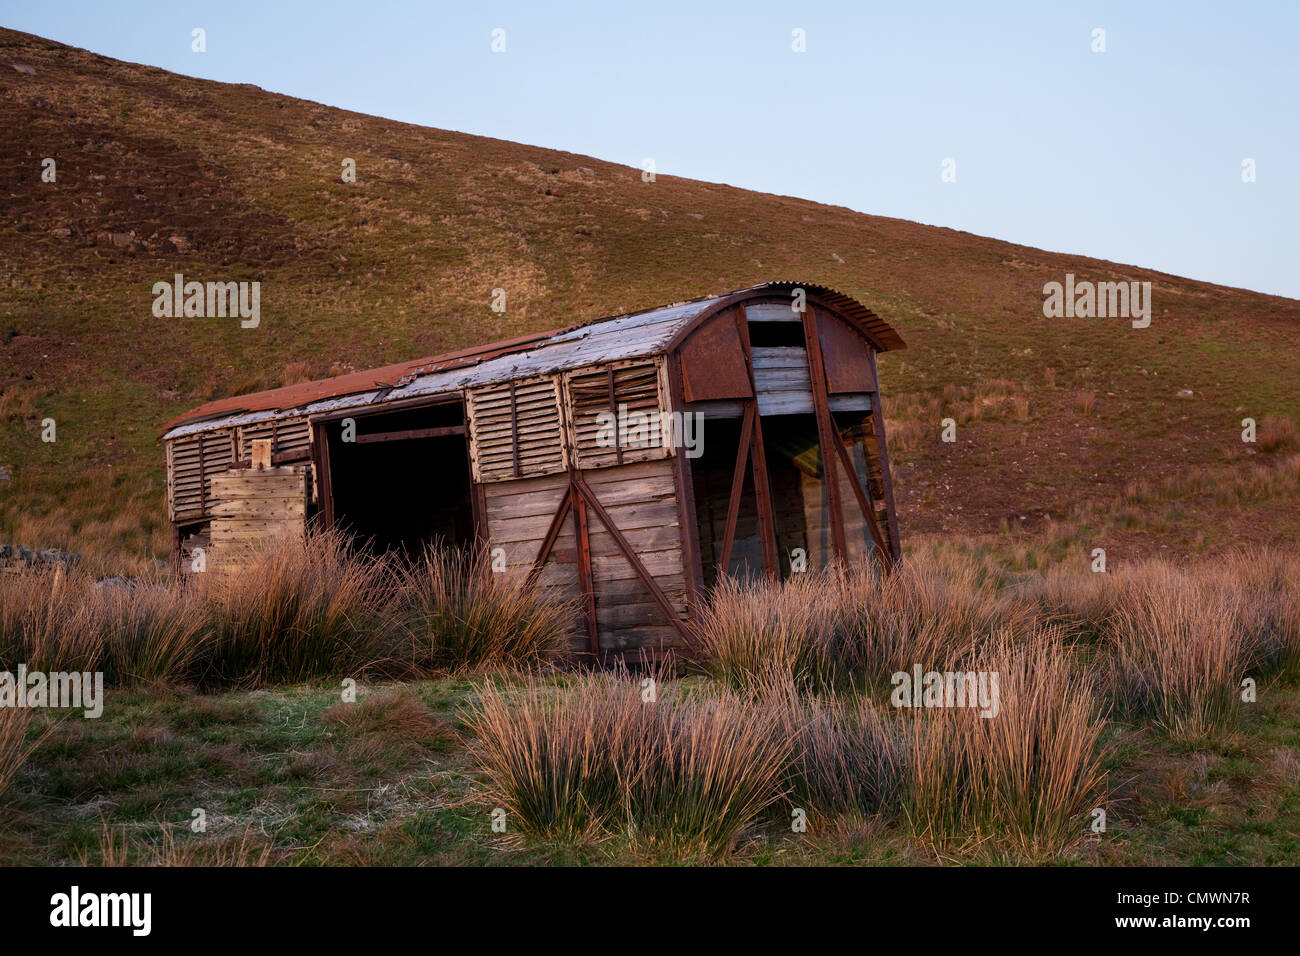 Carriage Barn Stock Photos Carriage Barn Stock Images Alamy